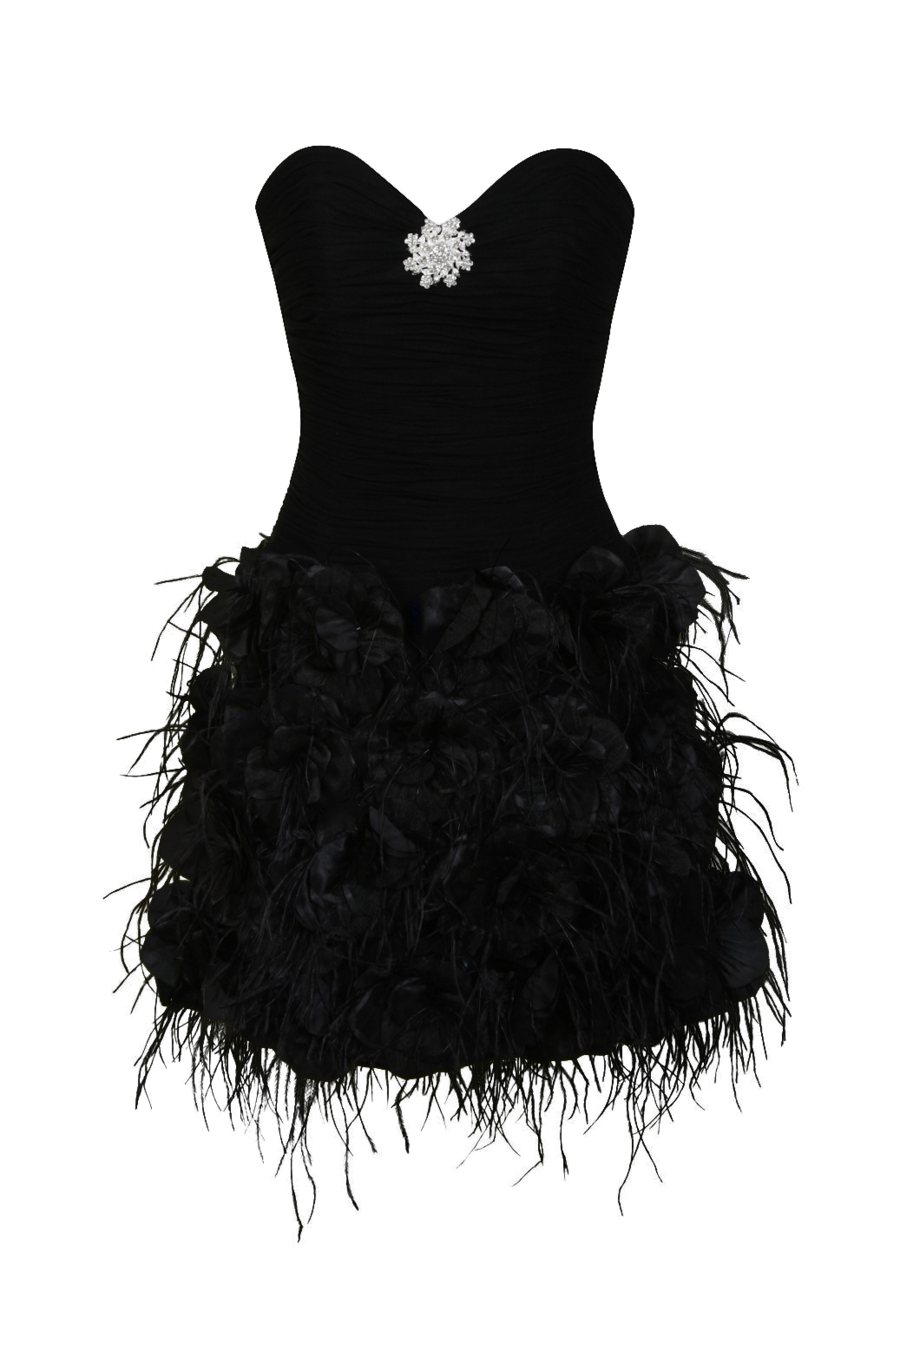 Black skirt transparent png. Dress pictures free icons